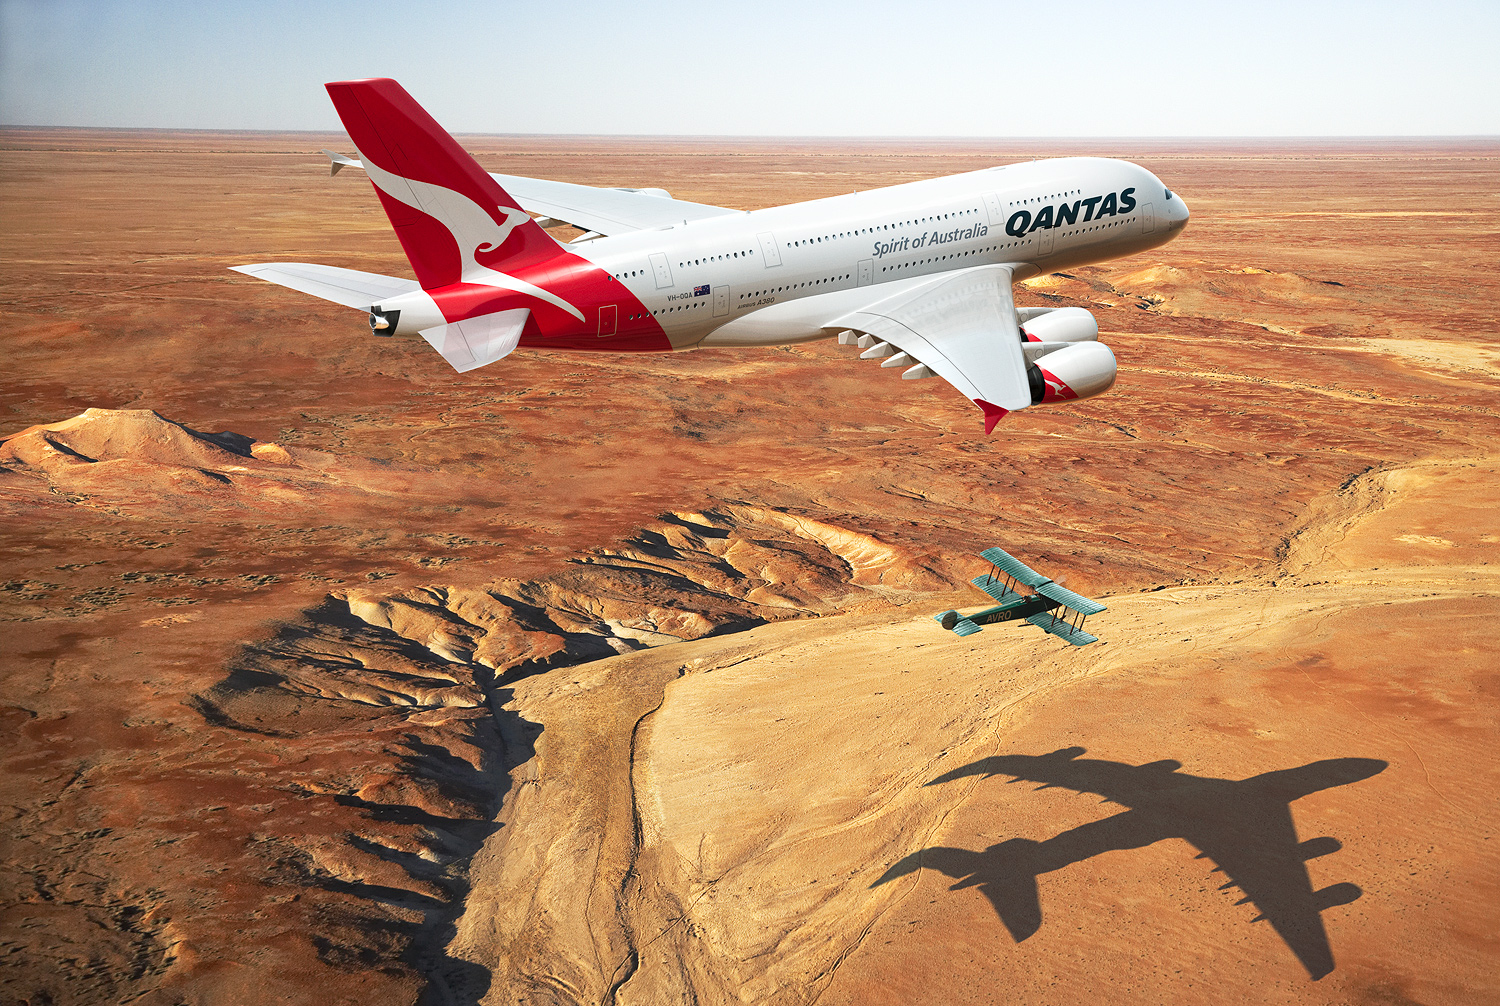 Qantas-Outback-A380-and-Avro-RGB-Final_WEB_ZP.jpg